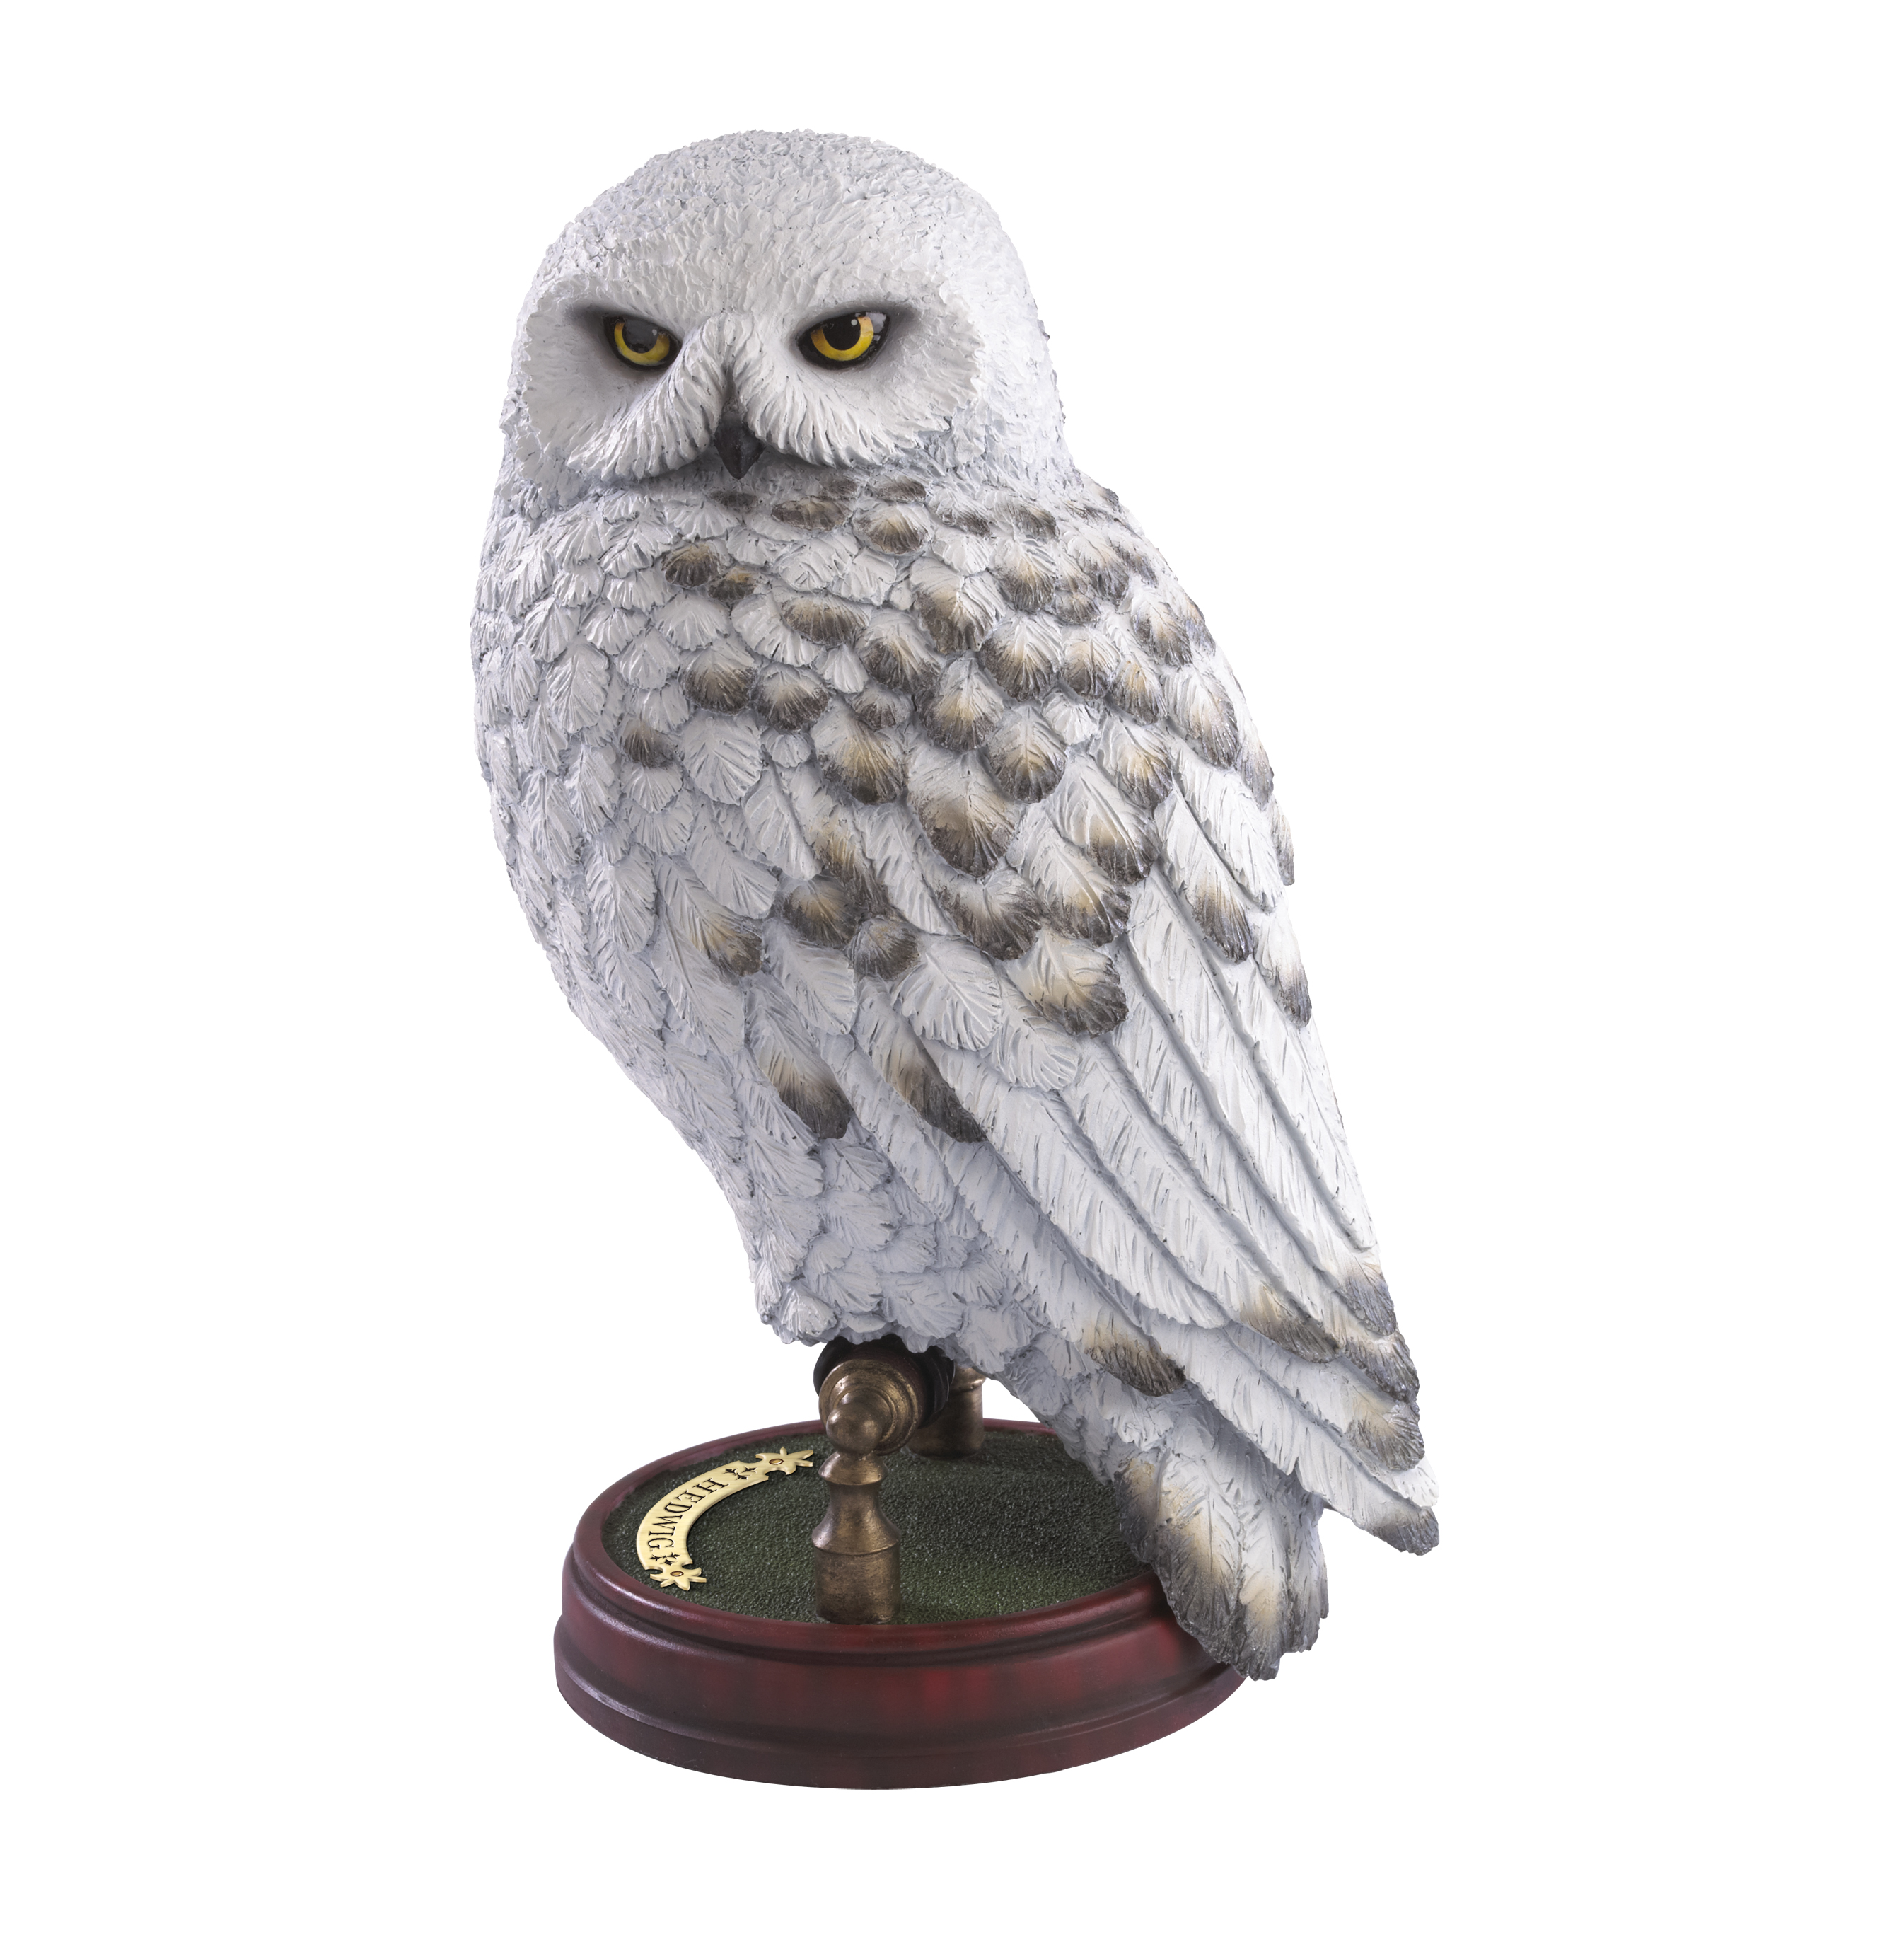 The Hedwig 9.5 inch sculpture